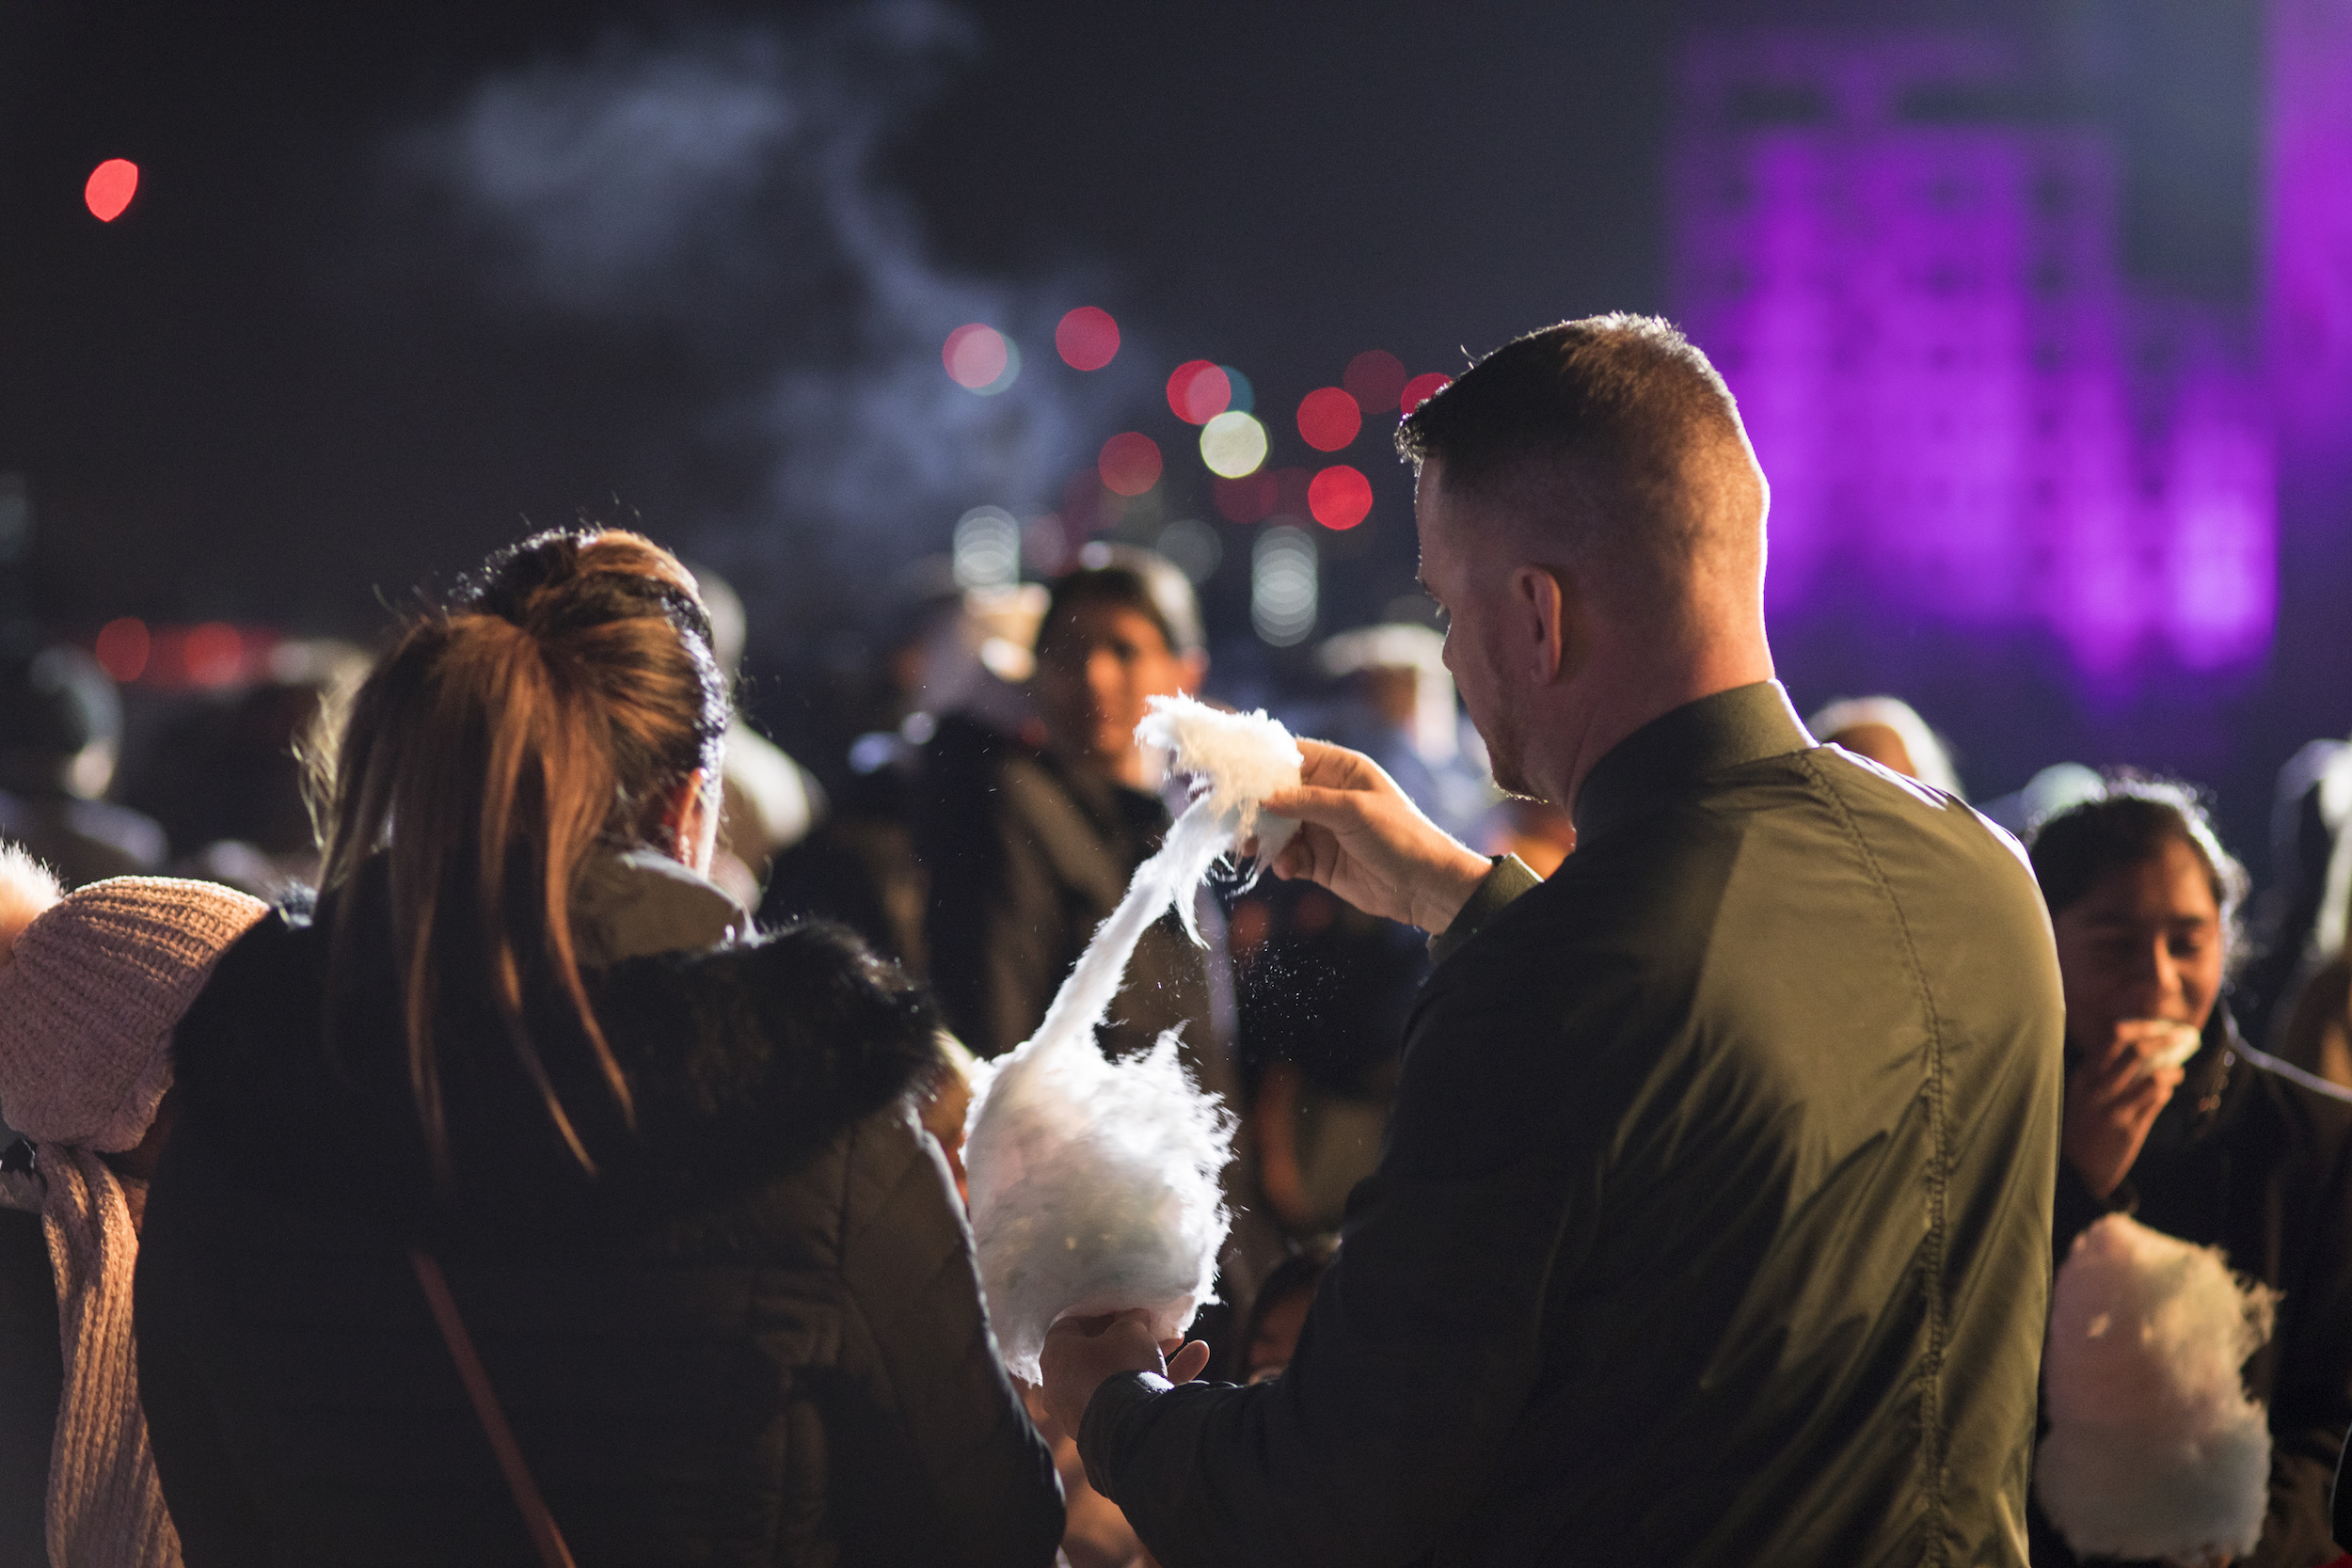 Two people enjoying candy floss